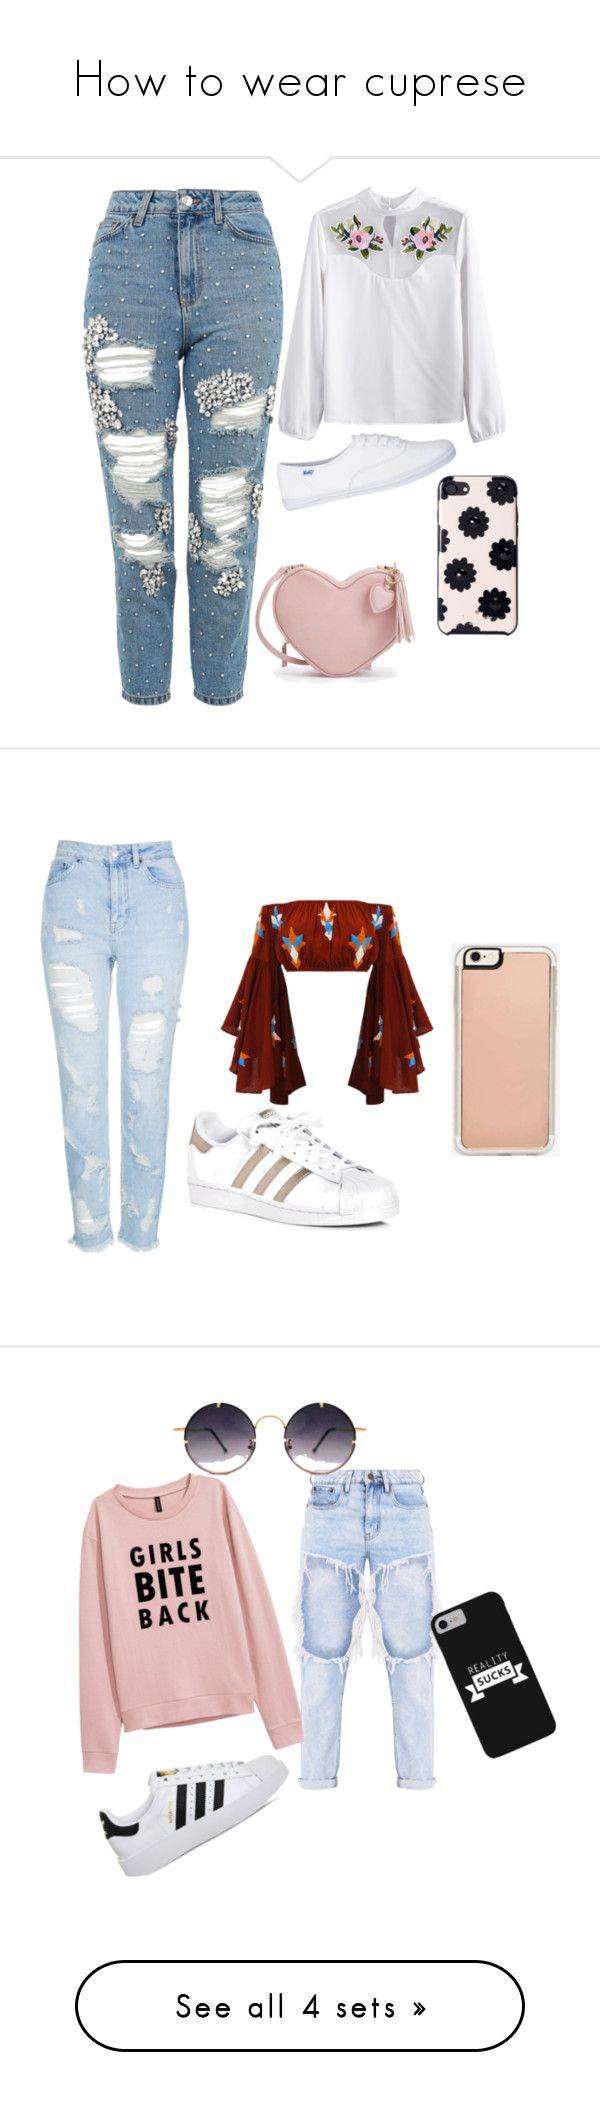 """How to wear cuprese"" by vaughril on Polyvore featuring Topshop, Kate Spade, adidas, Zero Gravity, Spitfire and Converse"